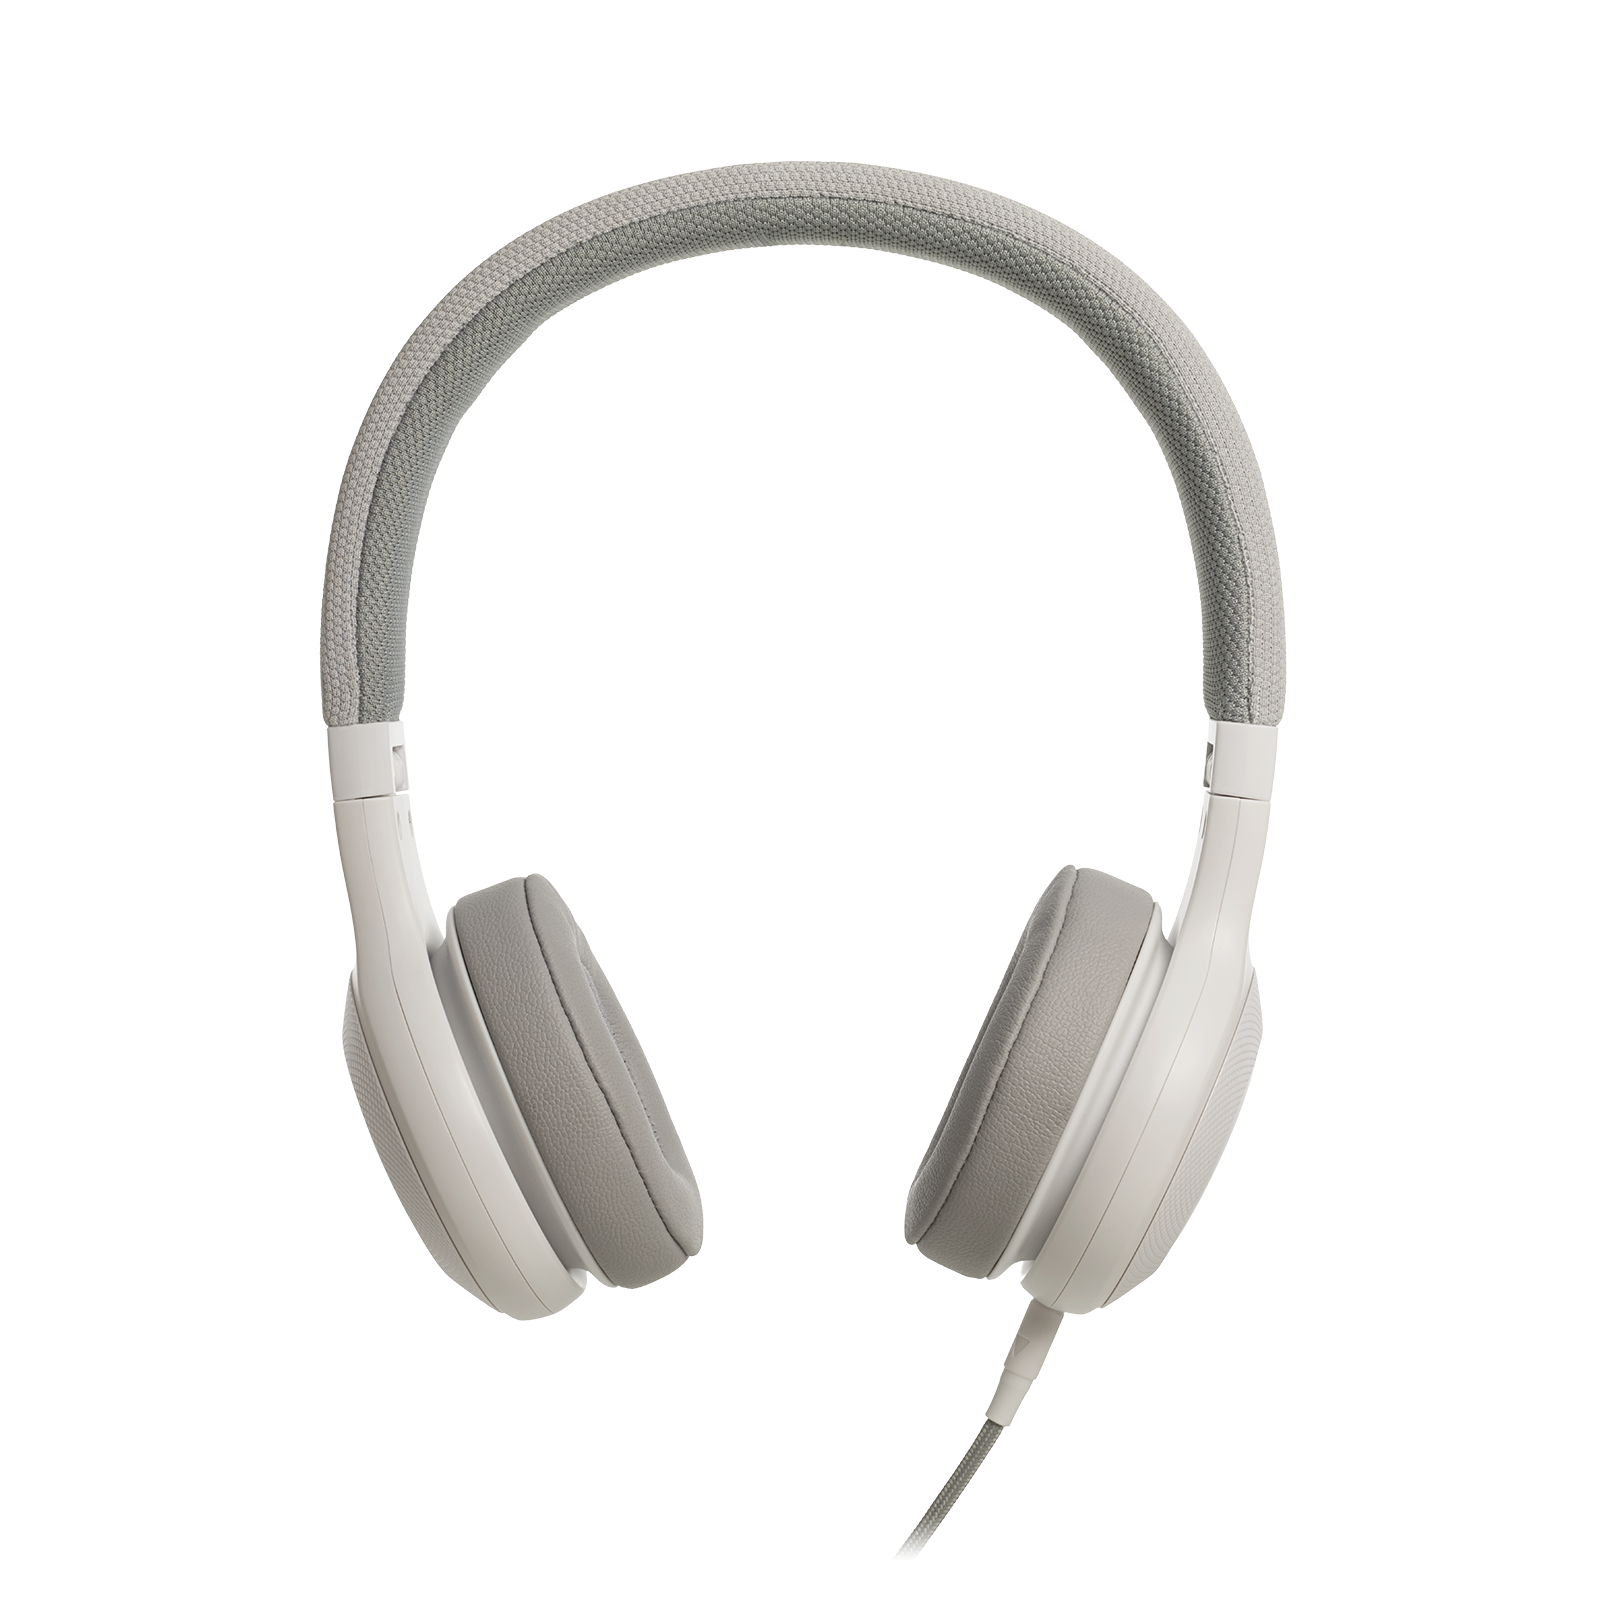 E35 - White - On-ear headphones - Detailshot 2